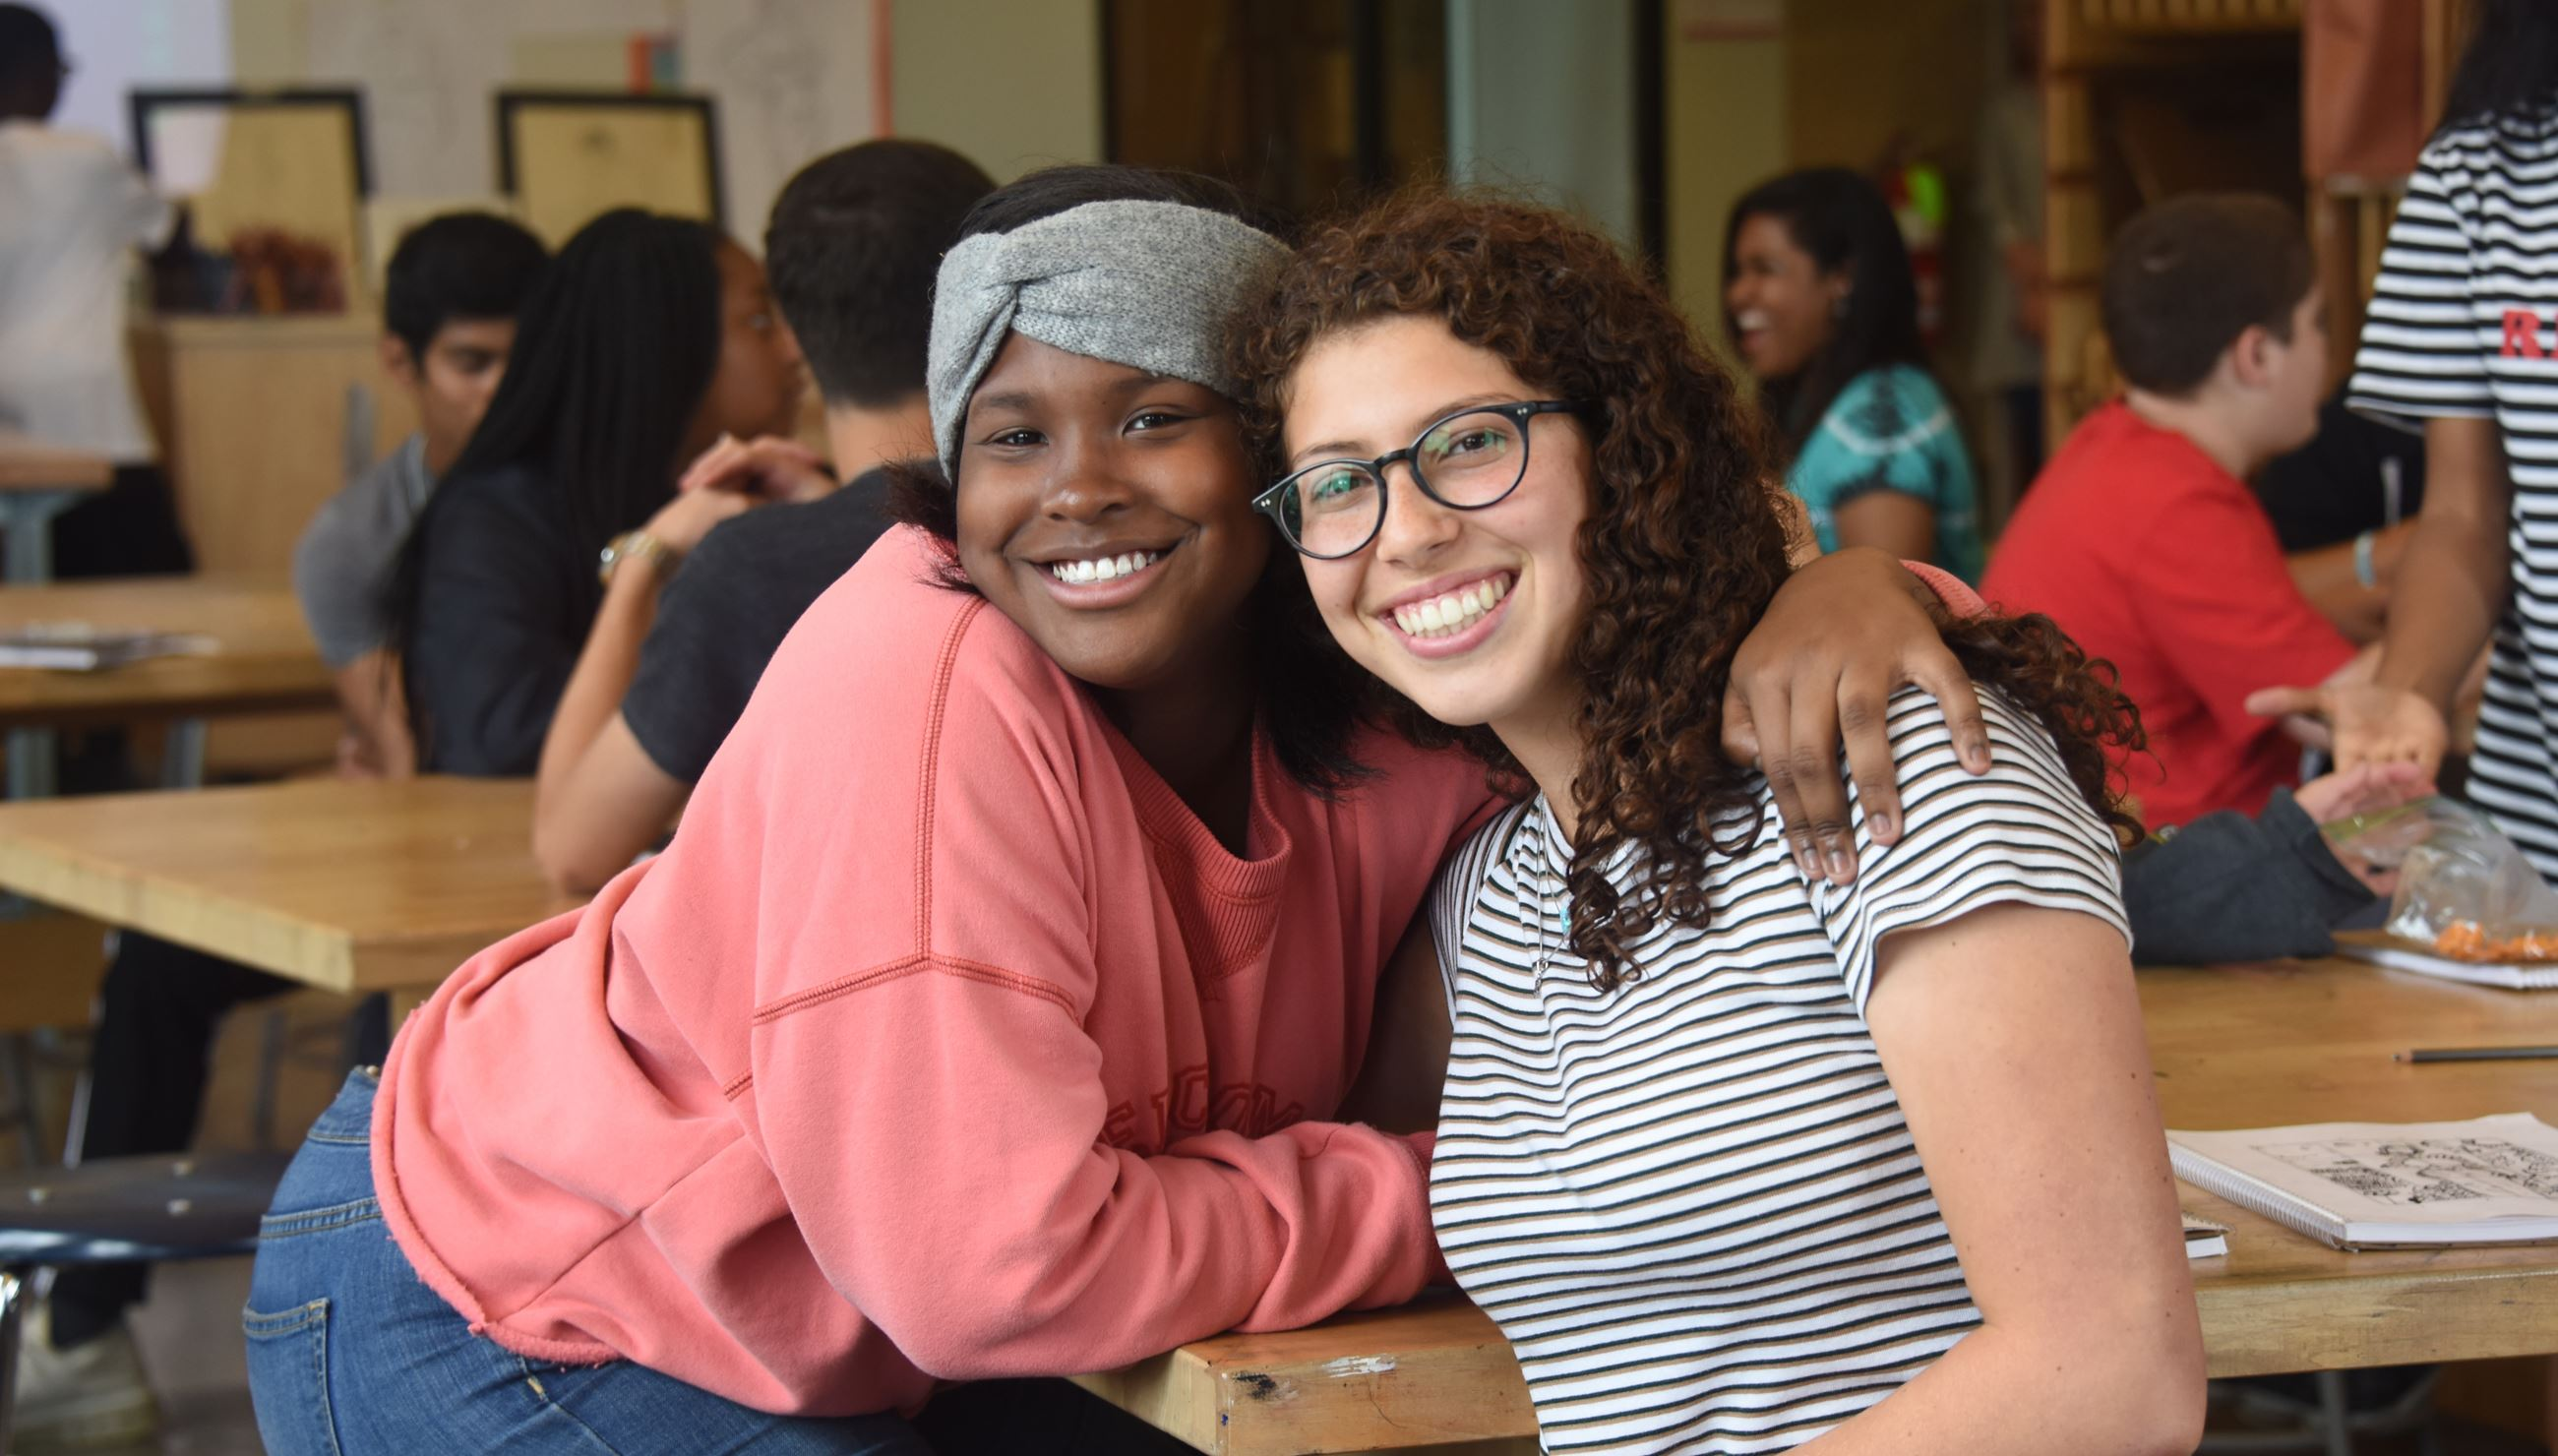 Two young women with their arms around each other smile at the camera